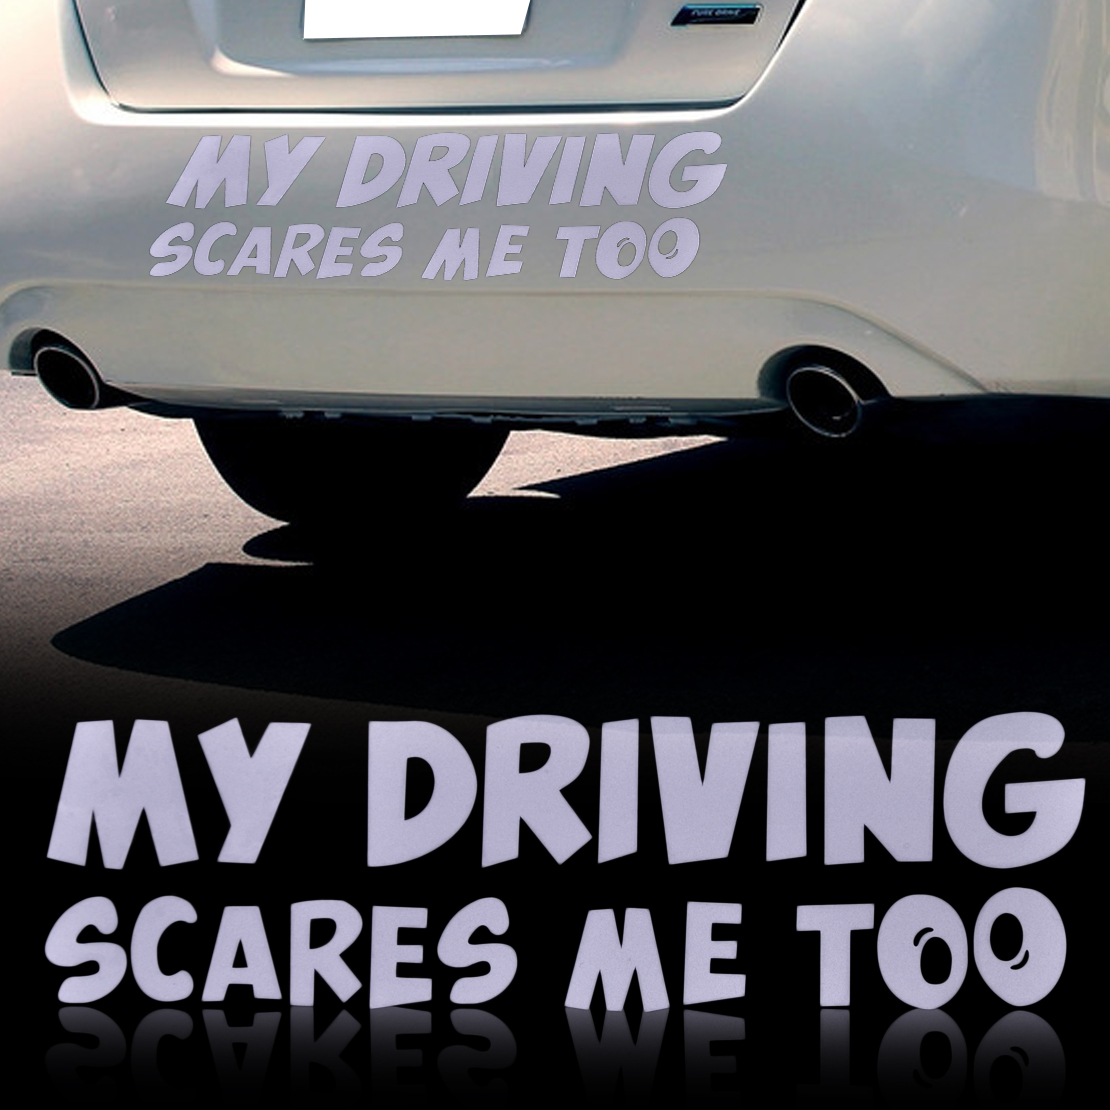 CITALL Car Stickers My Driving Scares Me Too Window Bumper Van - Car sticker decals custom